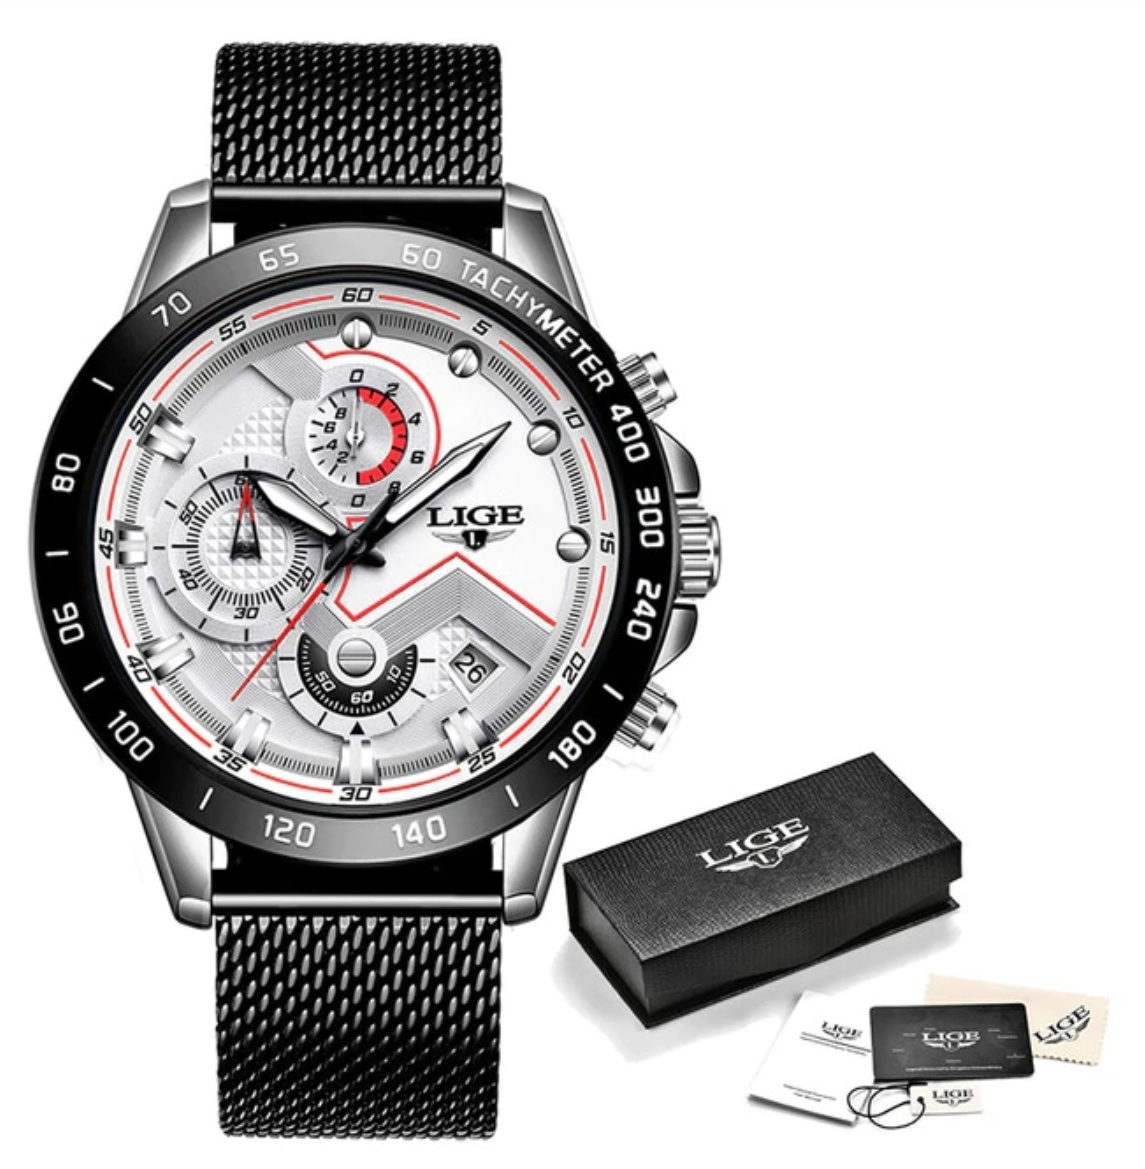 Quartz Watch - Anologue Luxury Movement for Men - Stainless Steel - Black-White